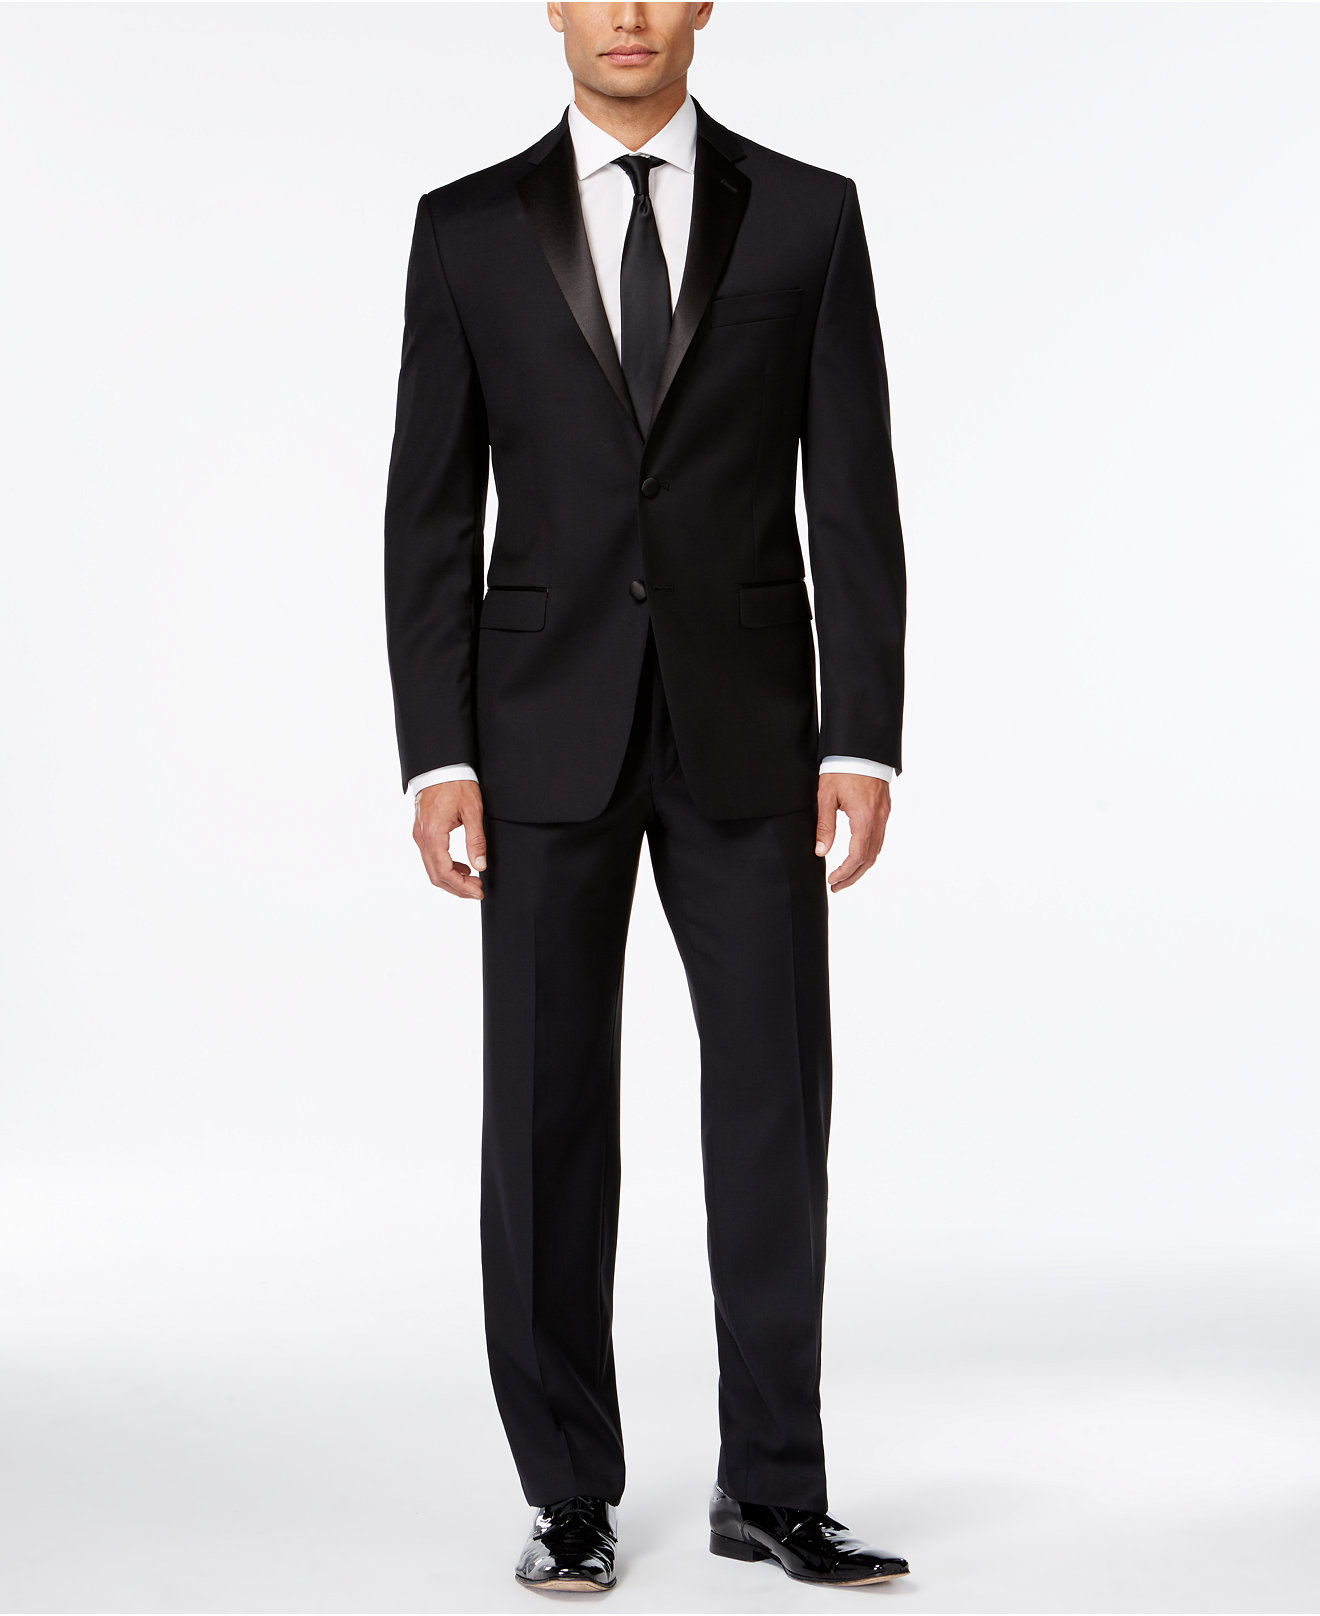 Mens Tuxedos & Formalwear for Weddings & Special Occasions - Macy's